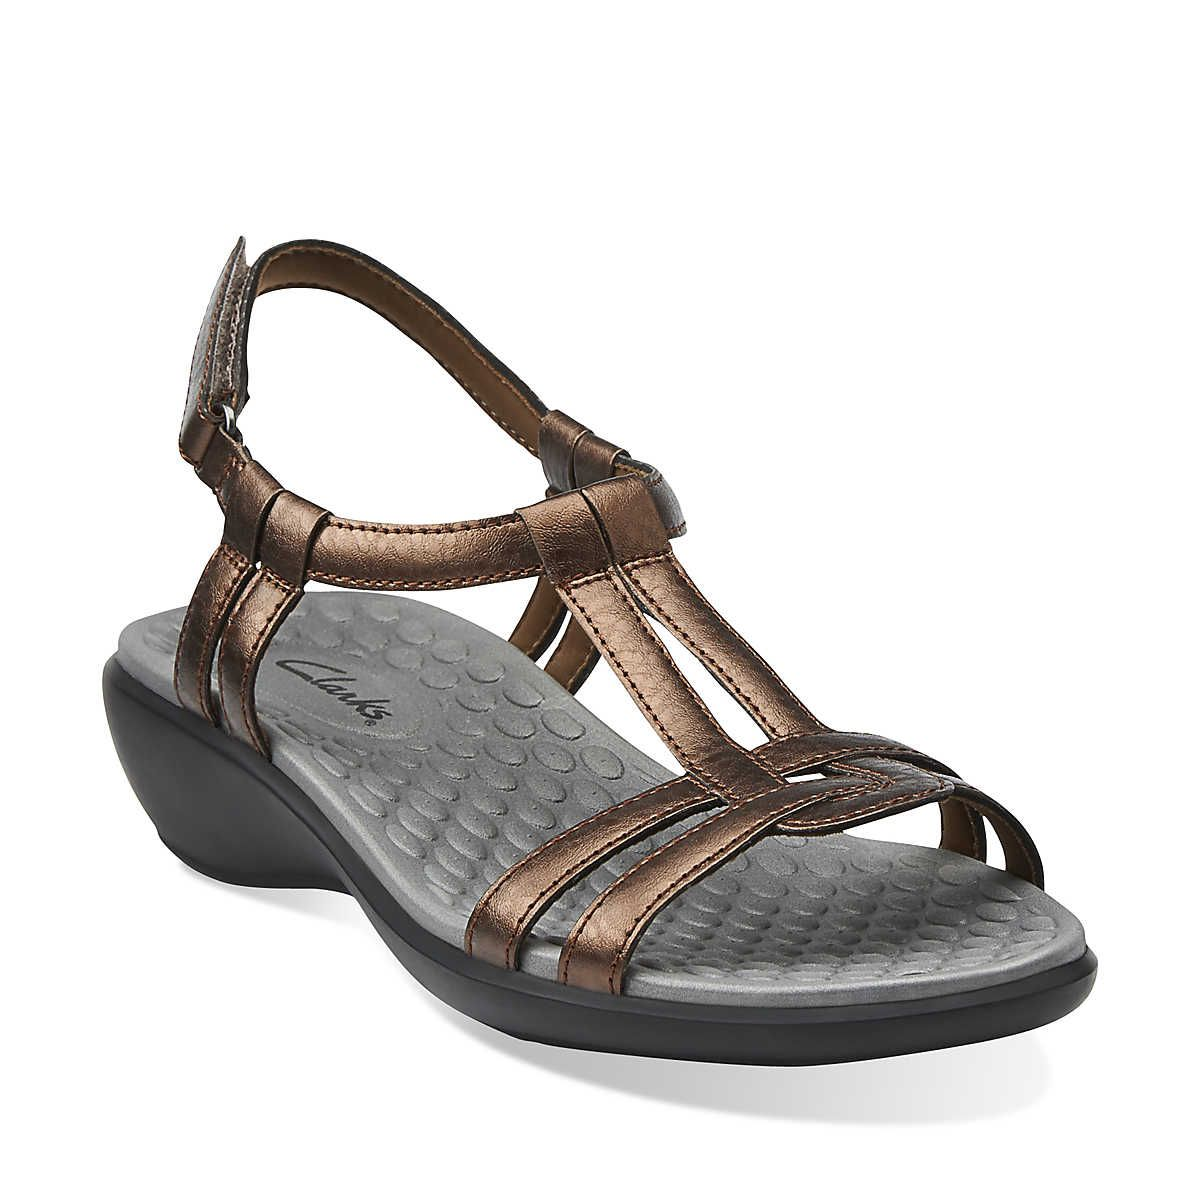 Sonar Aster in Bronze Synthetic - Womens Sandals from Clarks